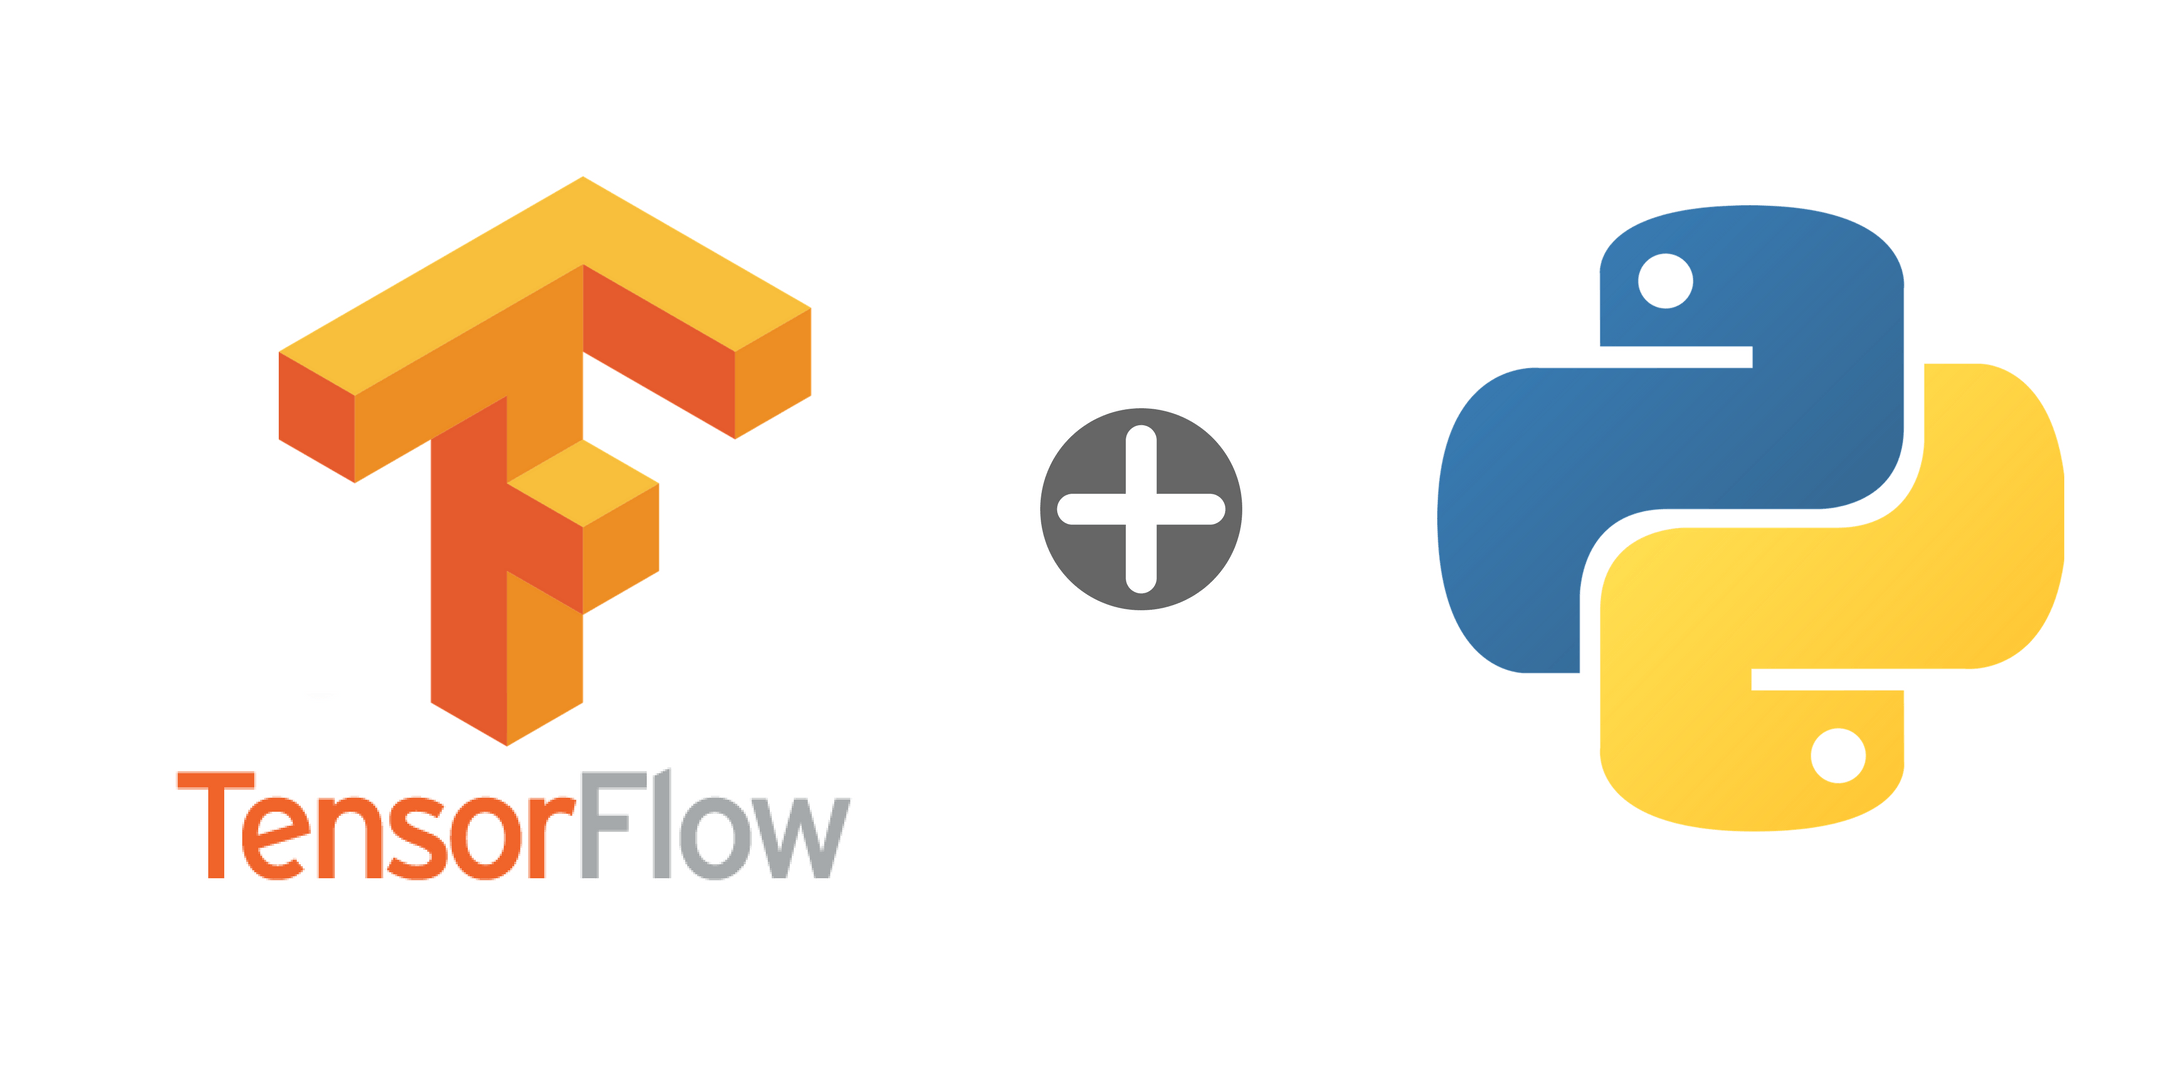 Deep Learning Training Bootcamp - Hands-On with Python TensorFlow  Live Instructor-Led Classes  Certification & Projects Included  100% Moneyback Guarantee  Dublin Ireland